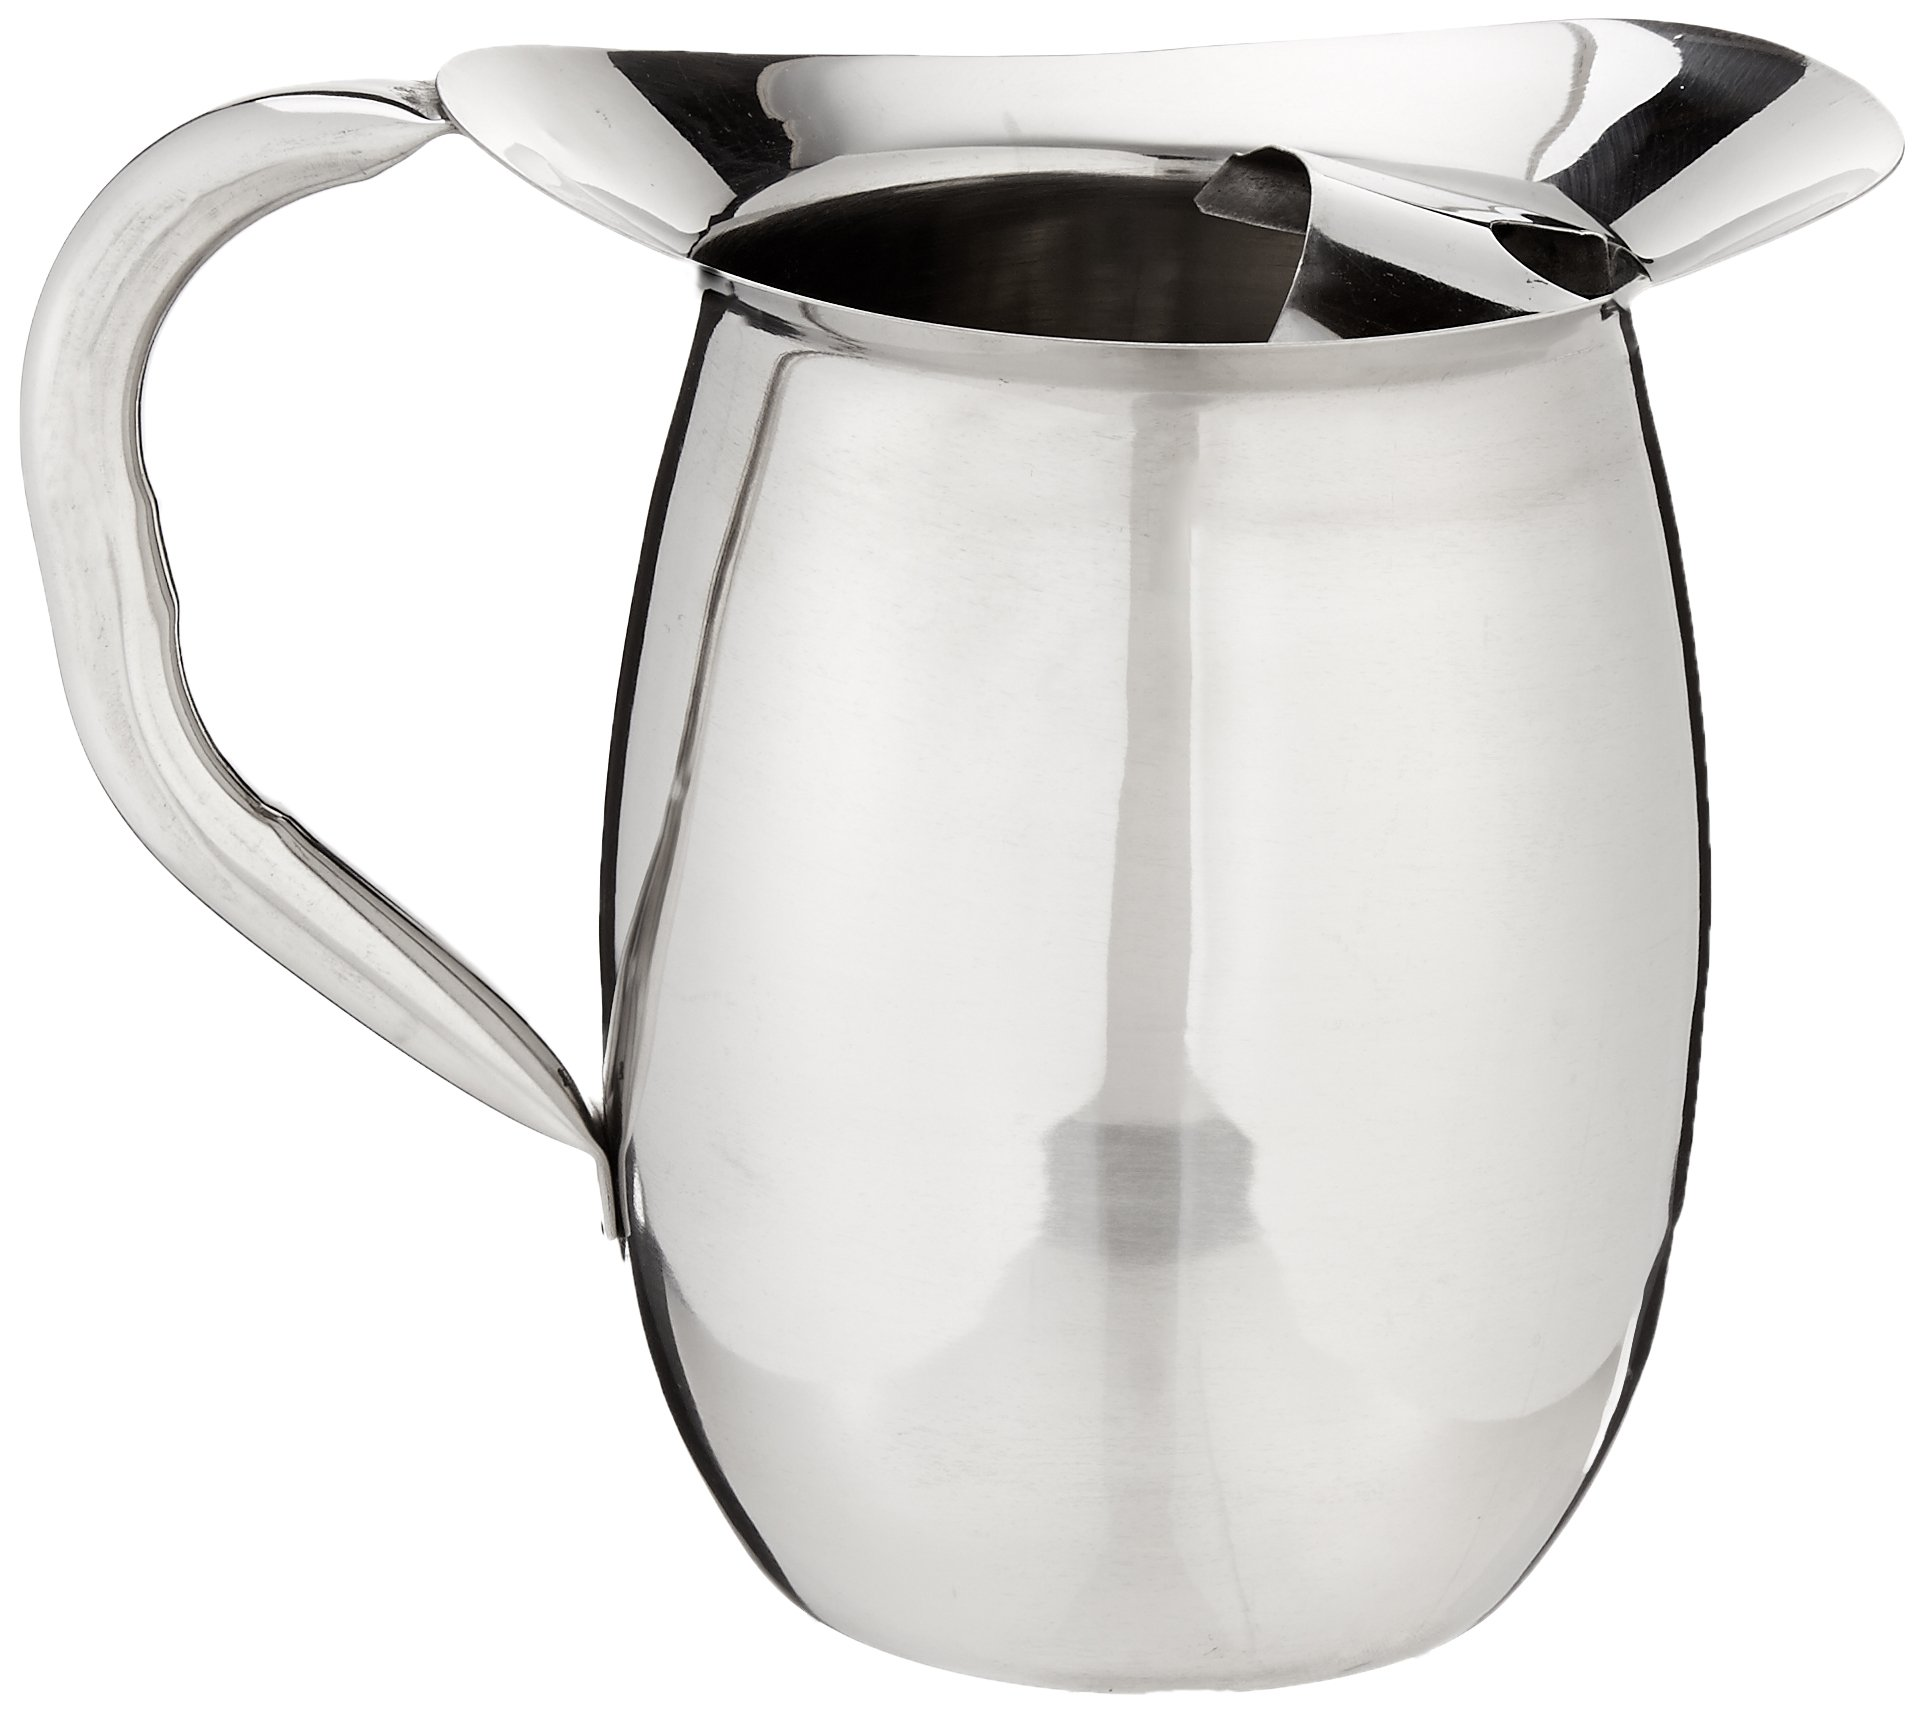 Winco WPB-2C Deluxe Bell Pitcher with Ice Catcher, 2-Quart, Stainless Steel